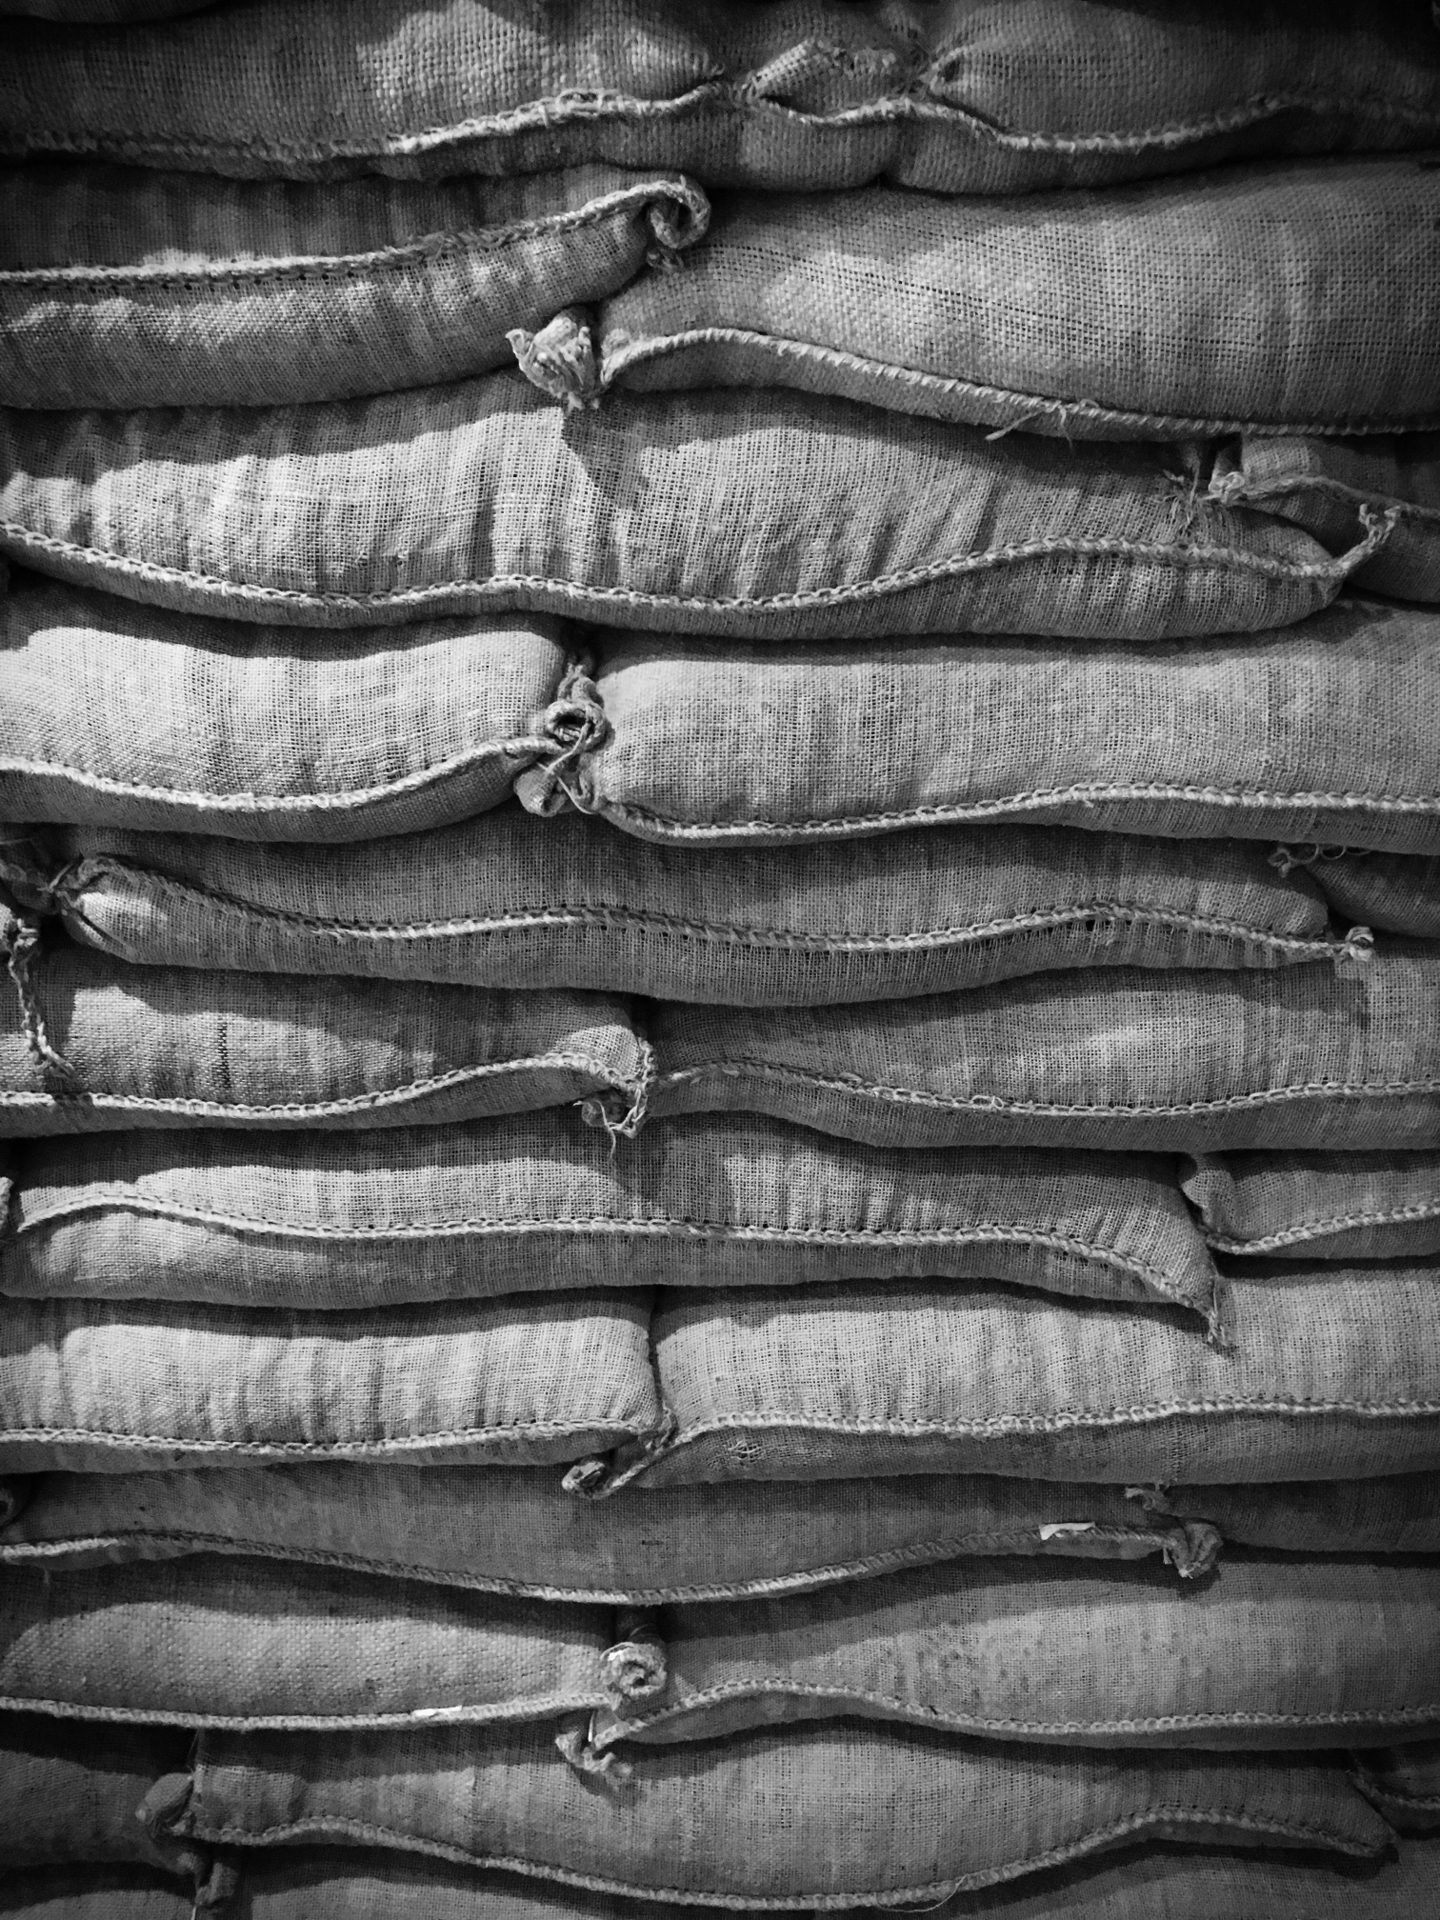 Sacks of coffee stacked up on atop another